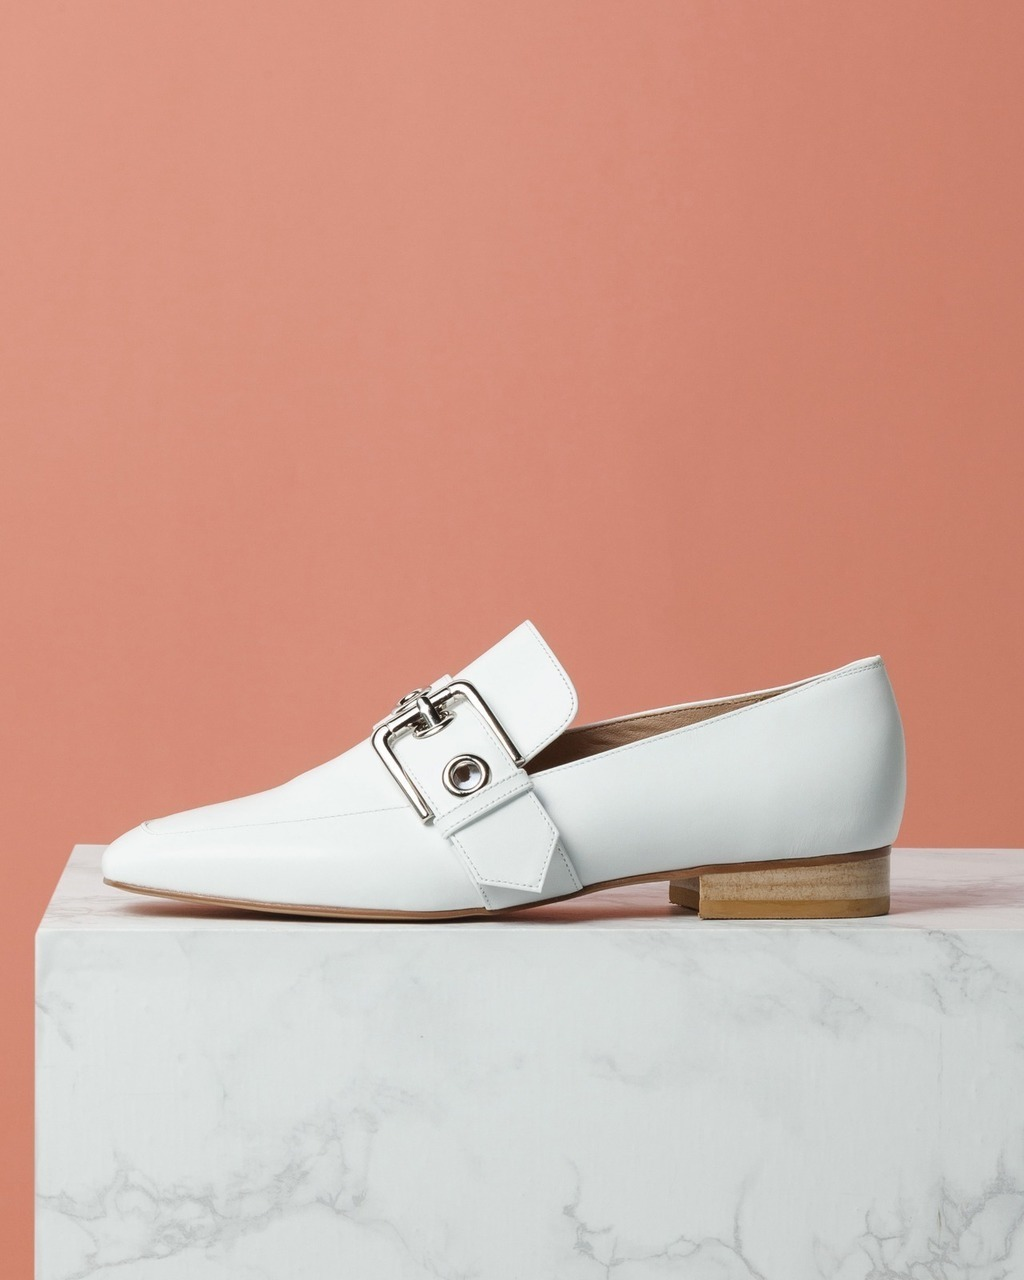 DORATORE Niko White - Women's Shoes : Republic of Korea